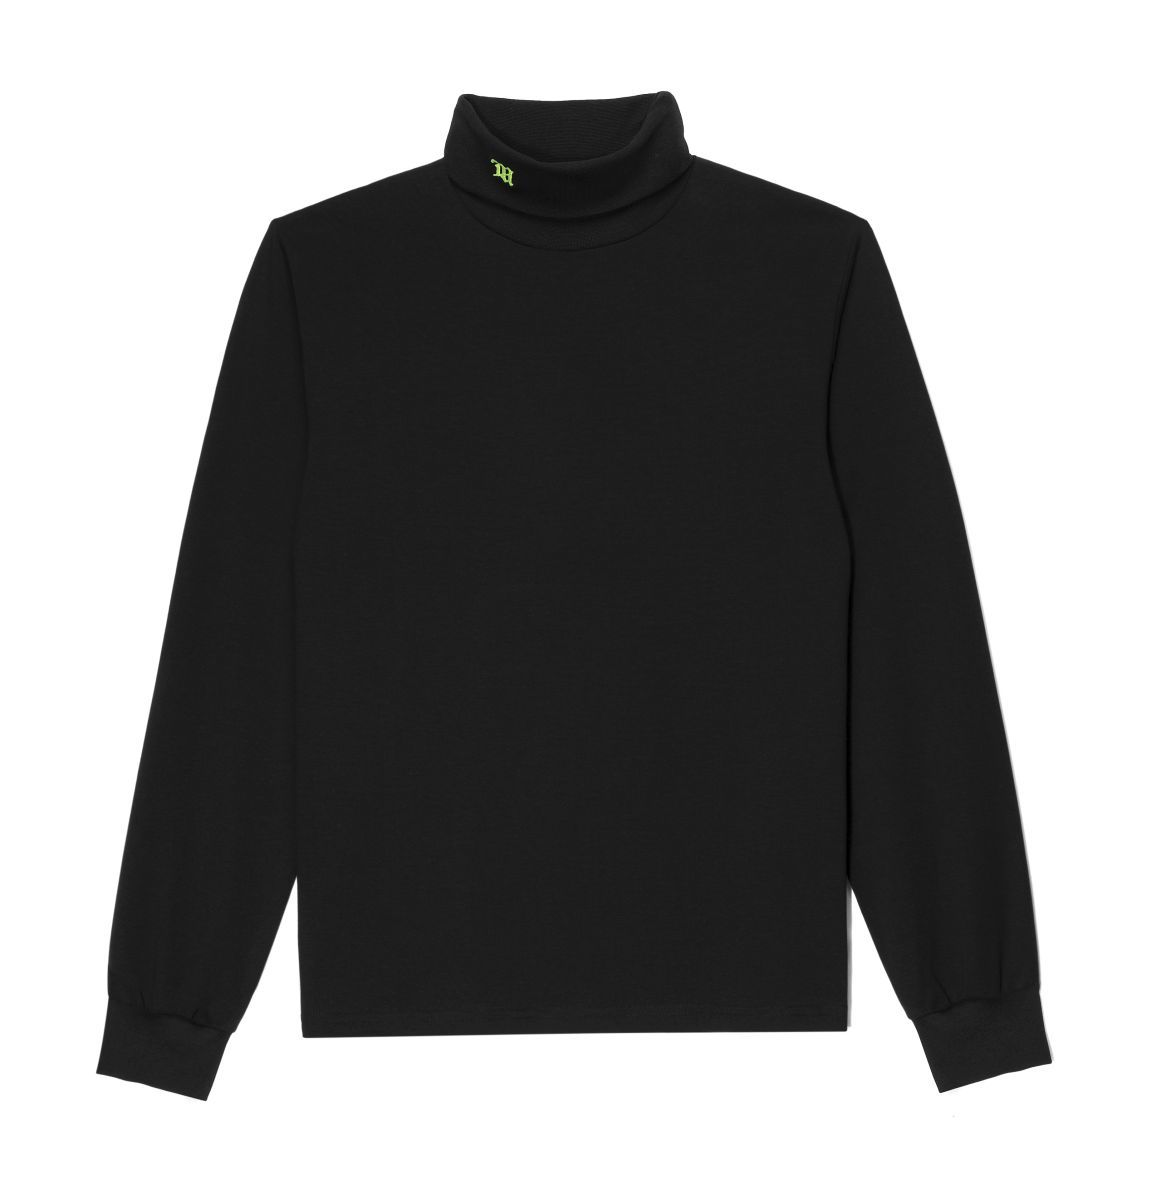 Logo Turtleneck Black